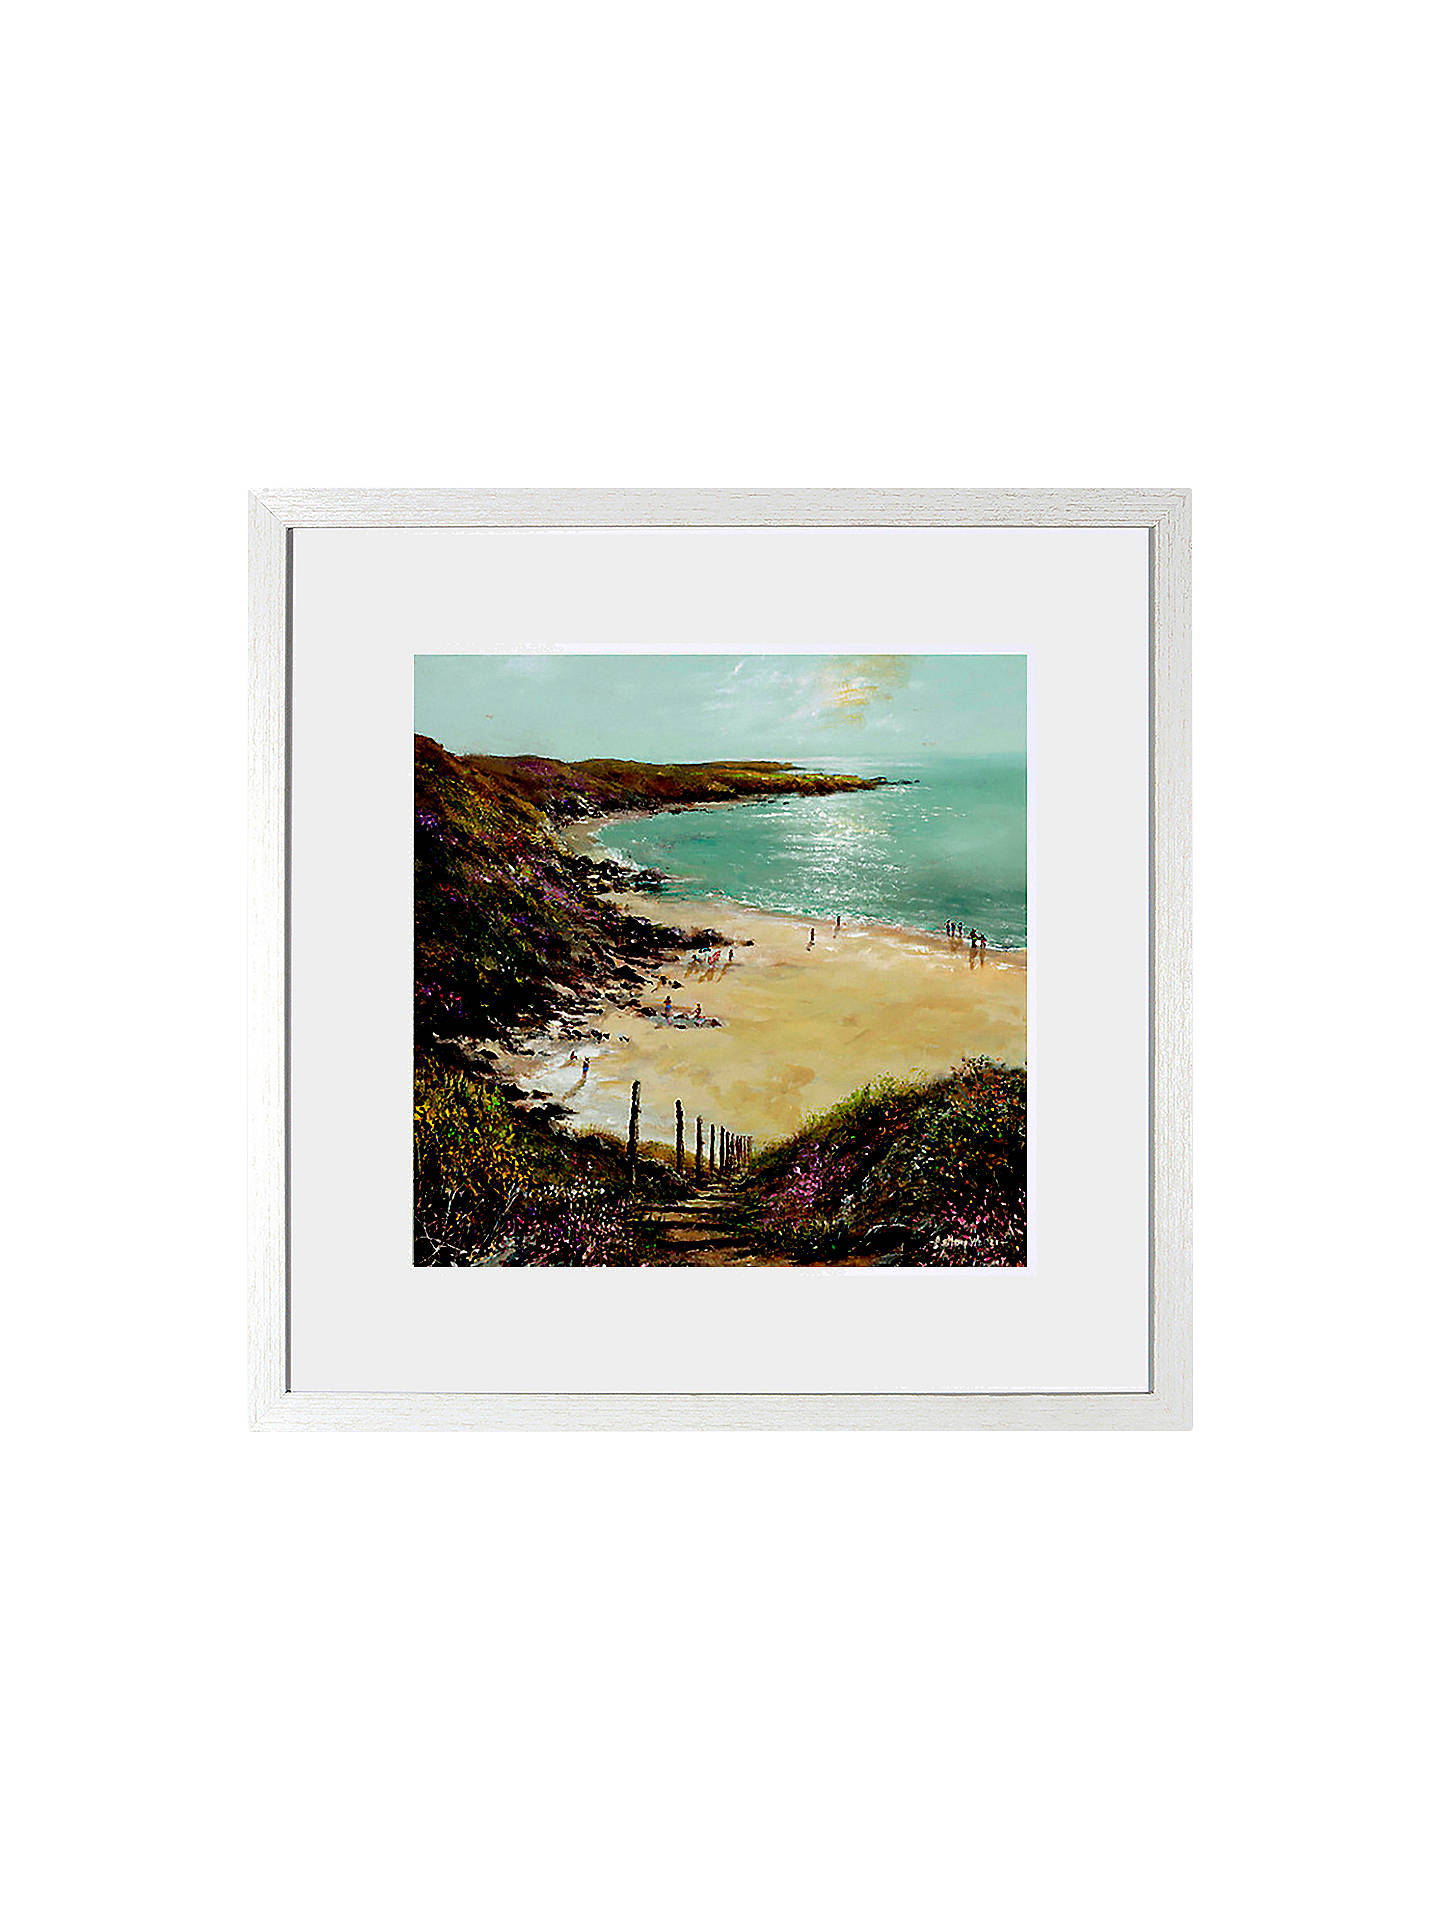 BuyAnthony Waller - White Sand Bay, 48 x 48cm Online at johnlewis.com